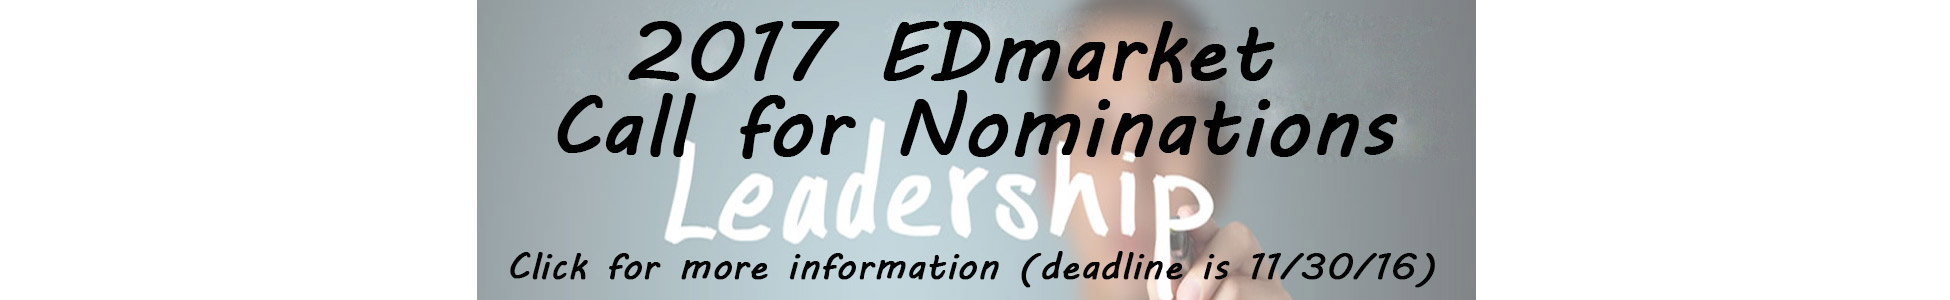 Call For EDmarket Leadership Nominations